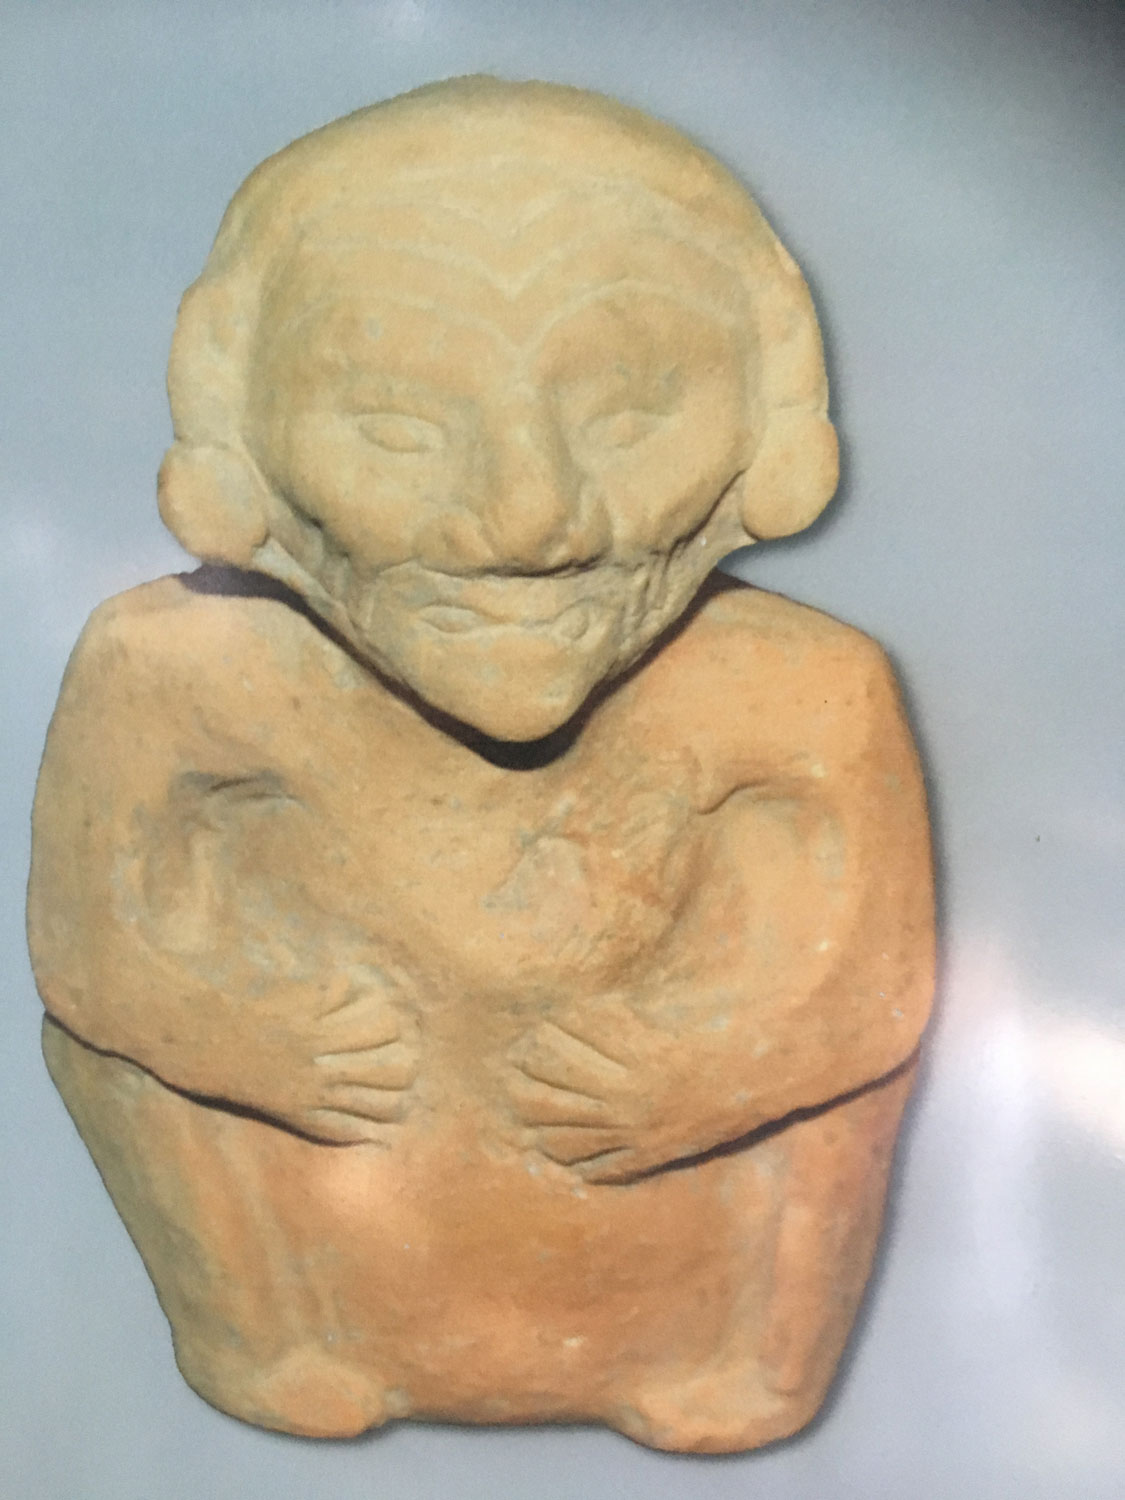 A sculpture found at San Miguelito.